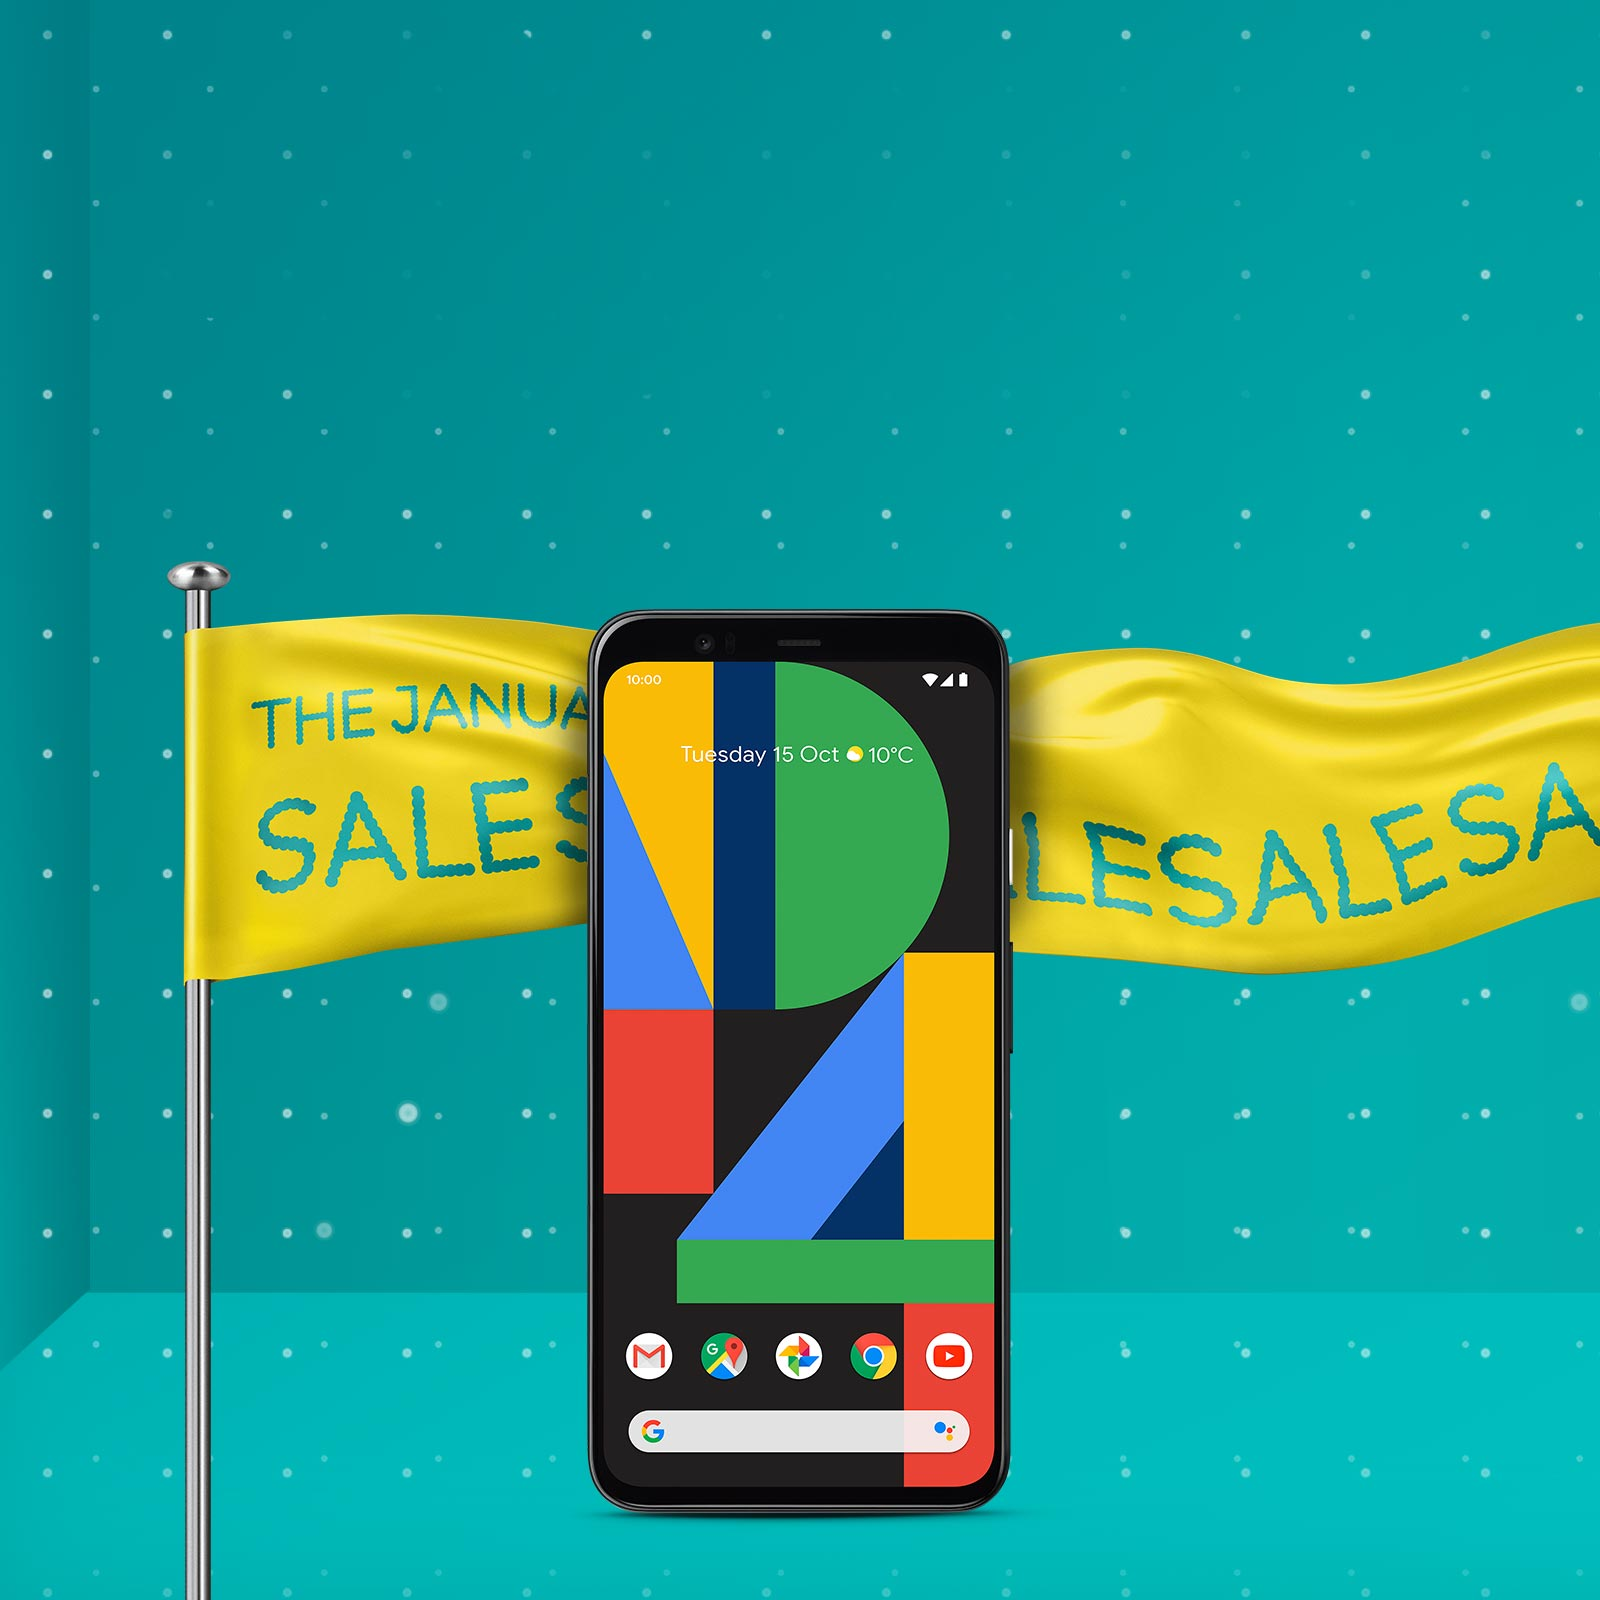 Google Pixel 4 with sales banner in background